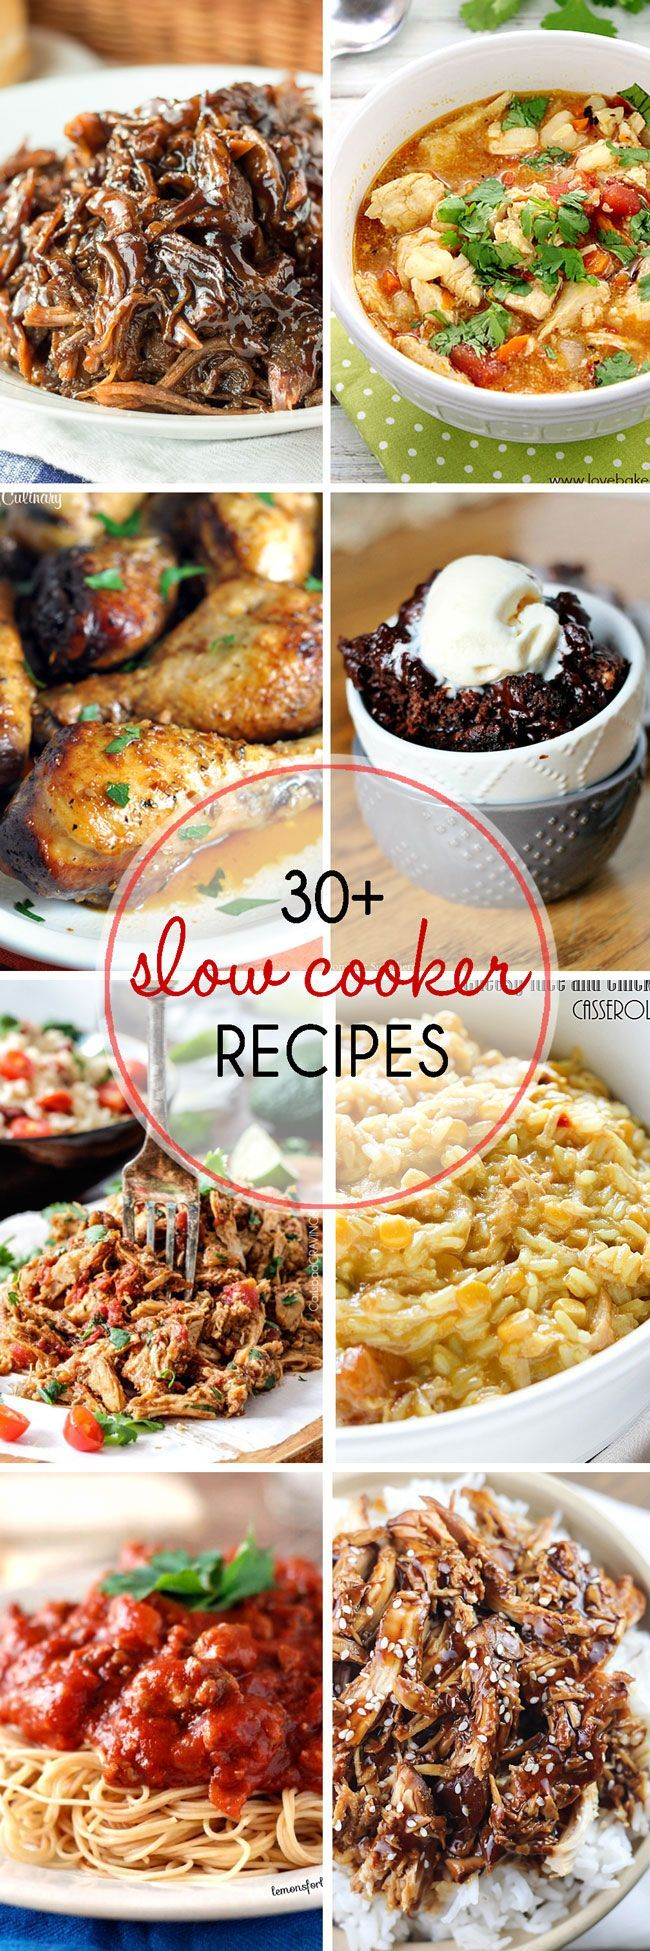 Ready to start using that slow cooker that's hiding in your cabinet? Here's Over 30 Easy Slow Cooker Recipes for you to enjoy over and over!